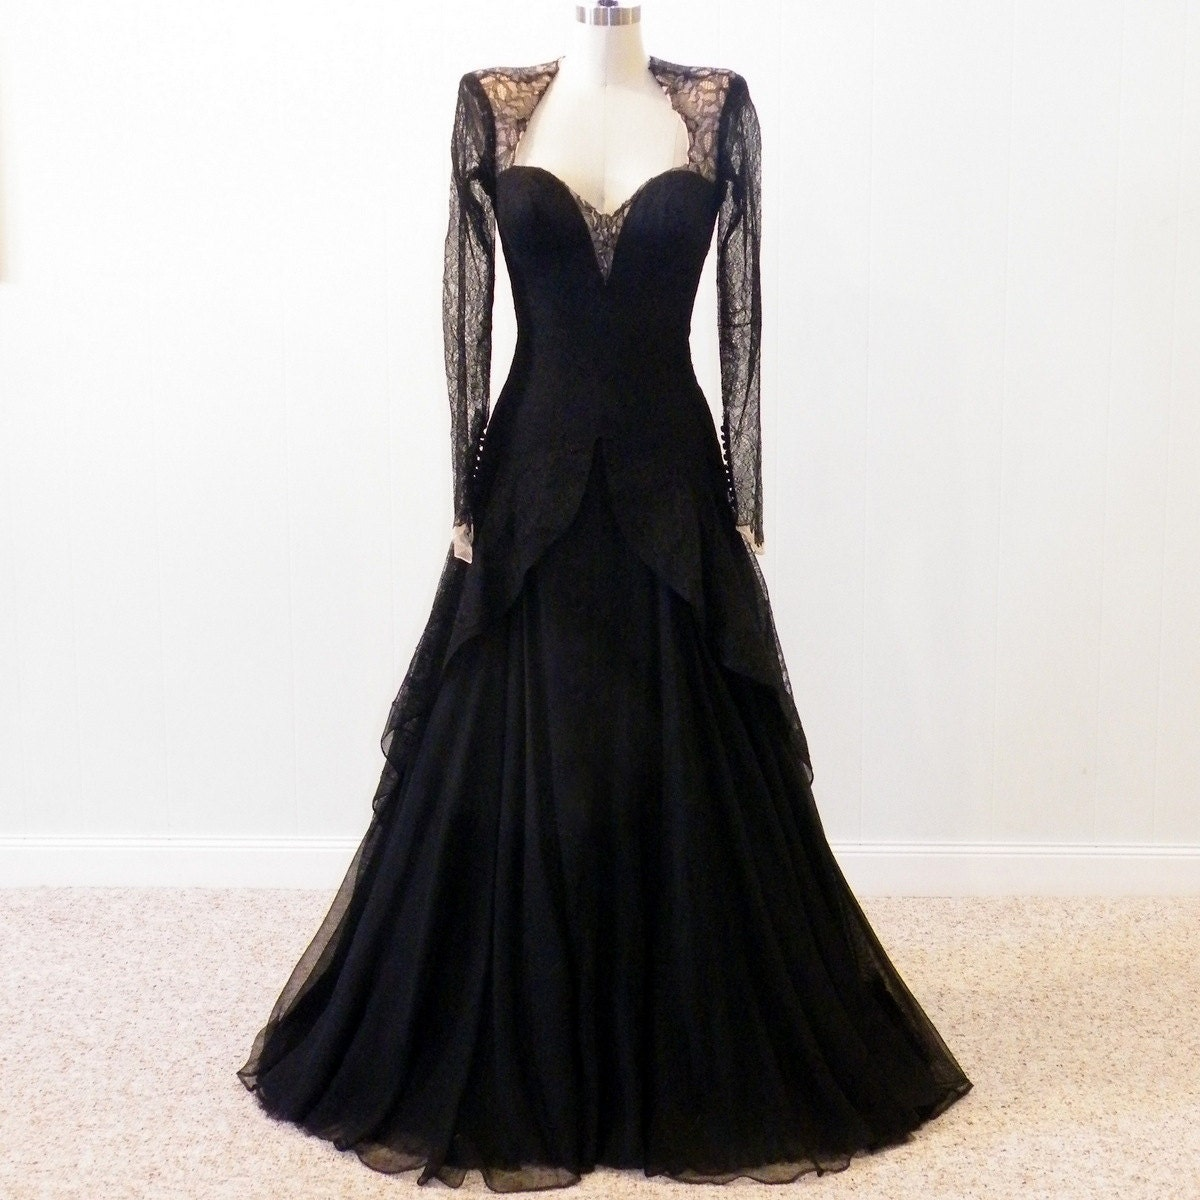 Forties style evening dresses